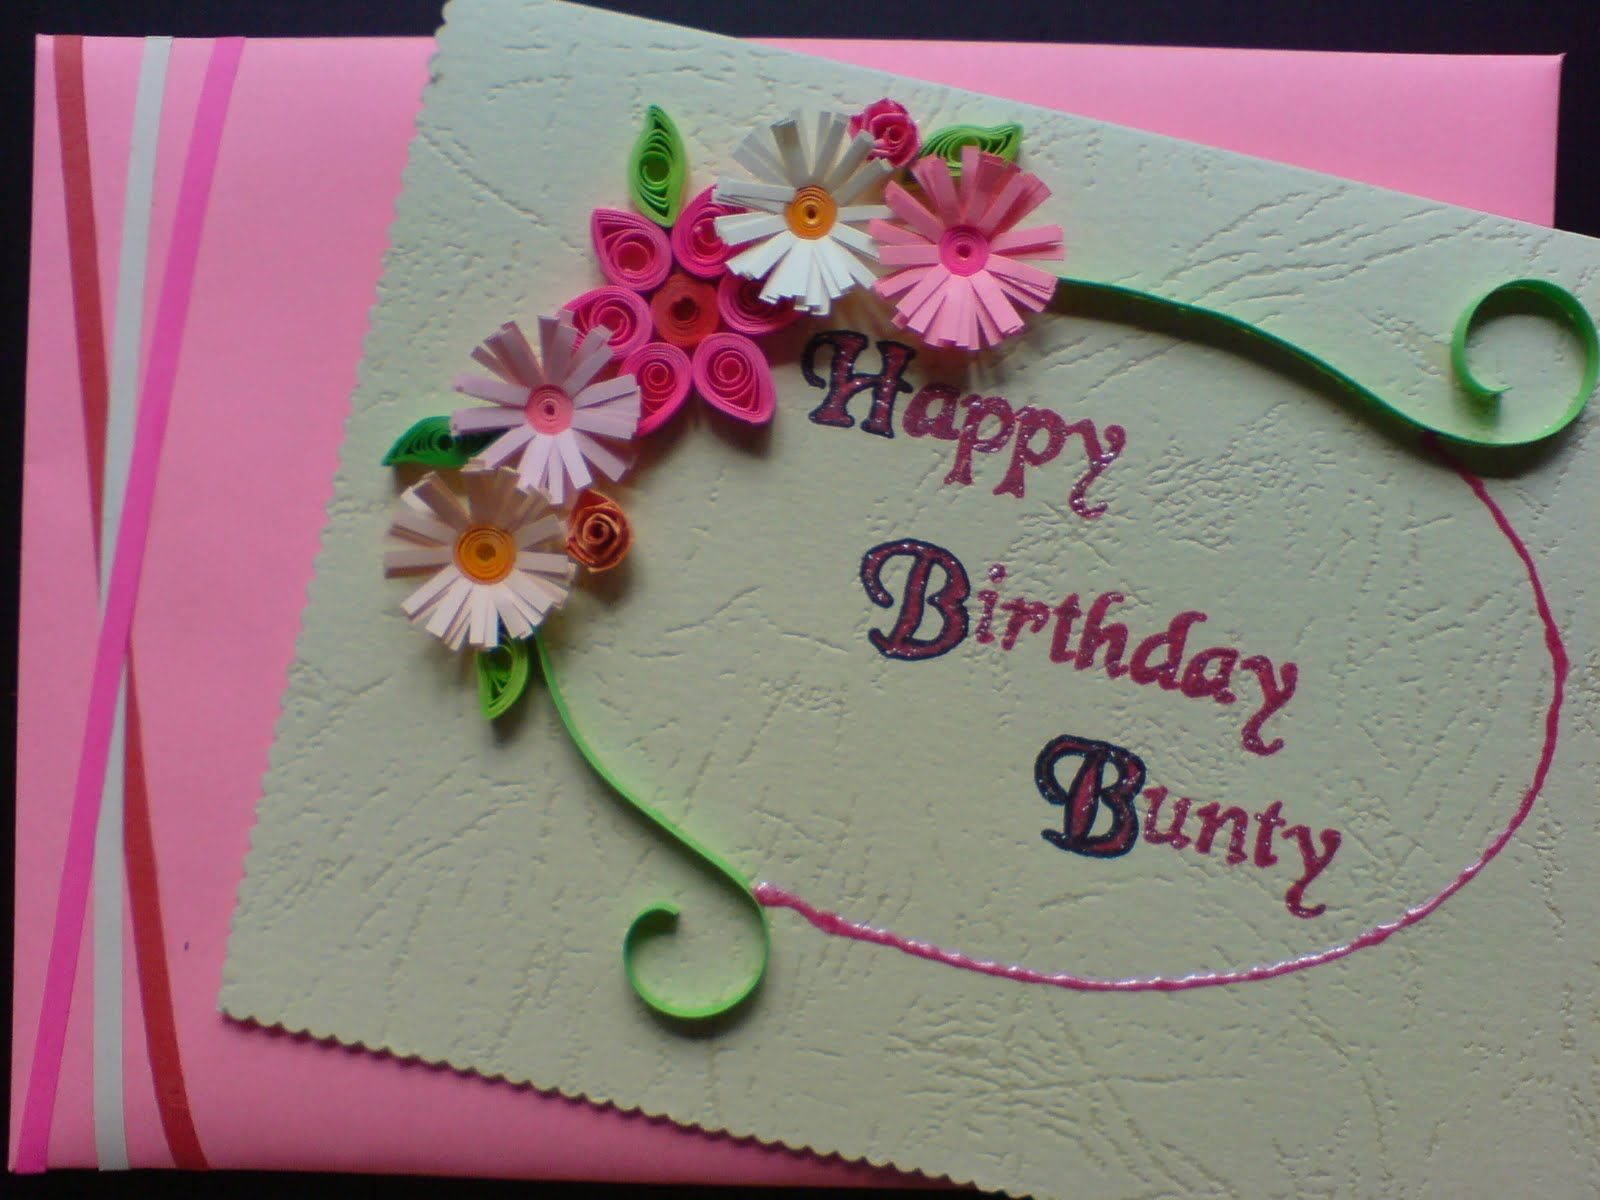 Handmade Greeting Cards For An Extra Special Person – Birthday Cards You Can Print out